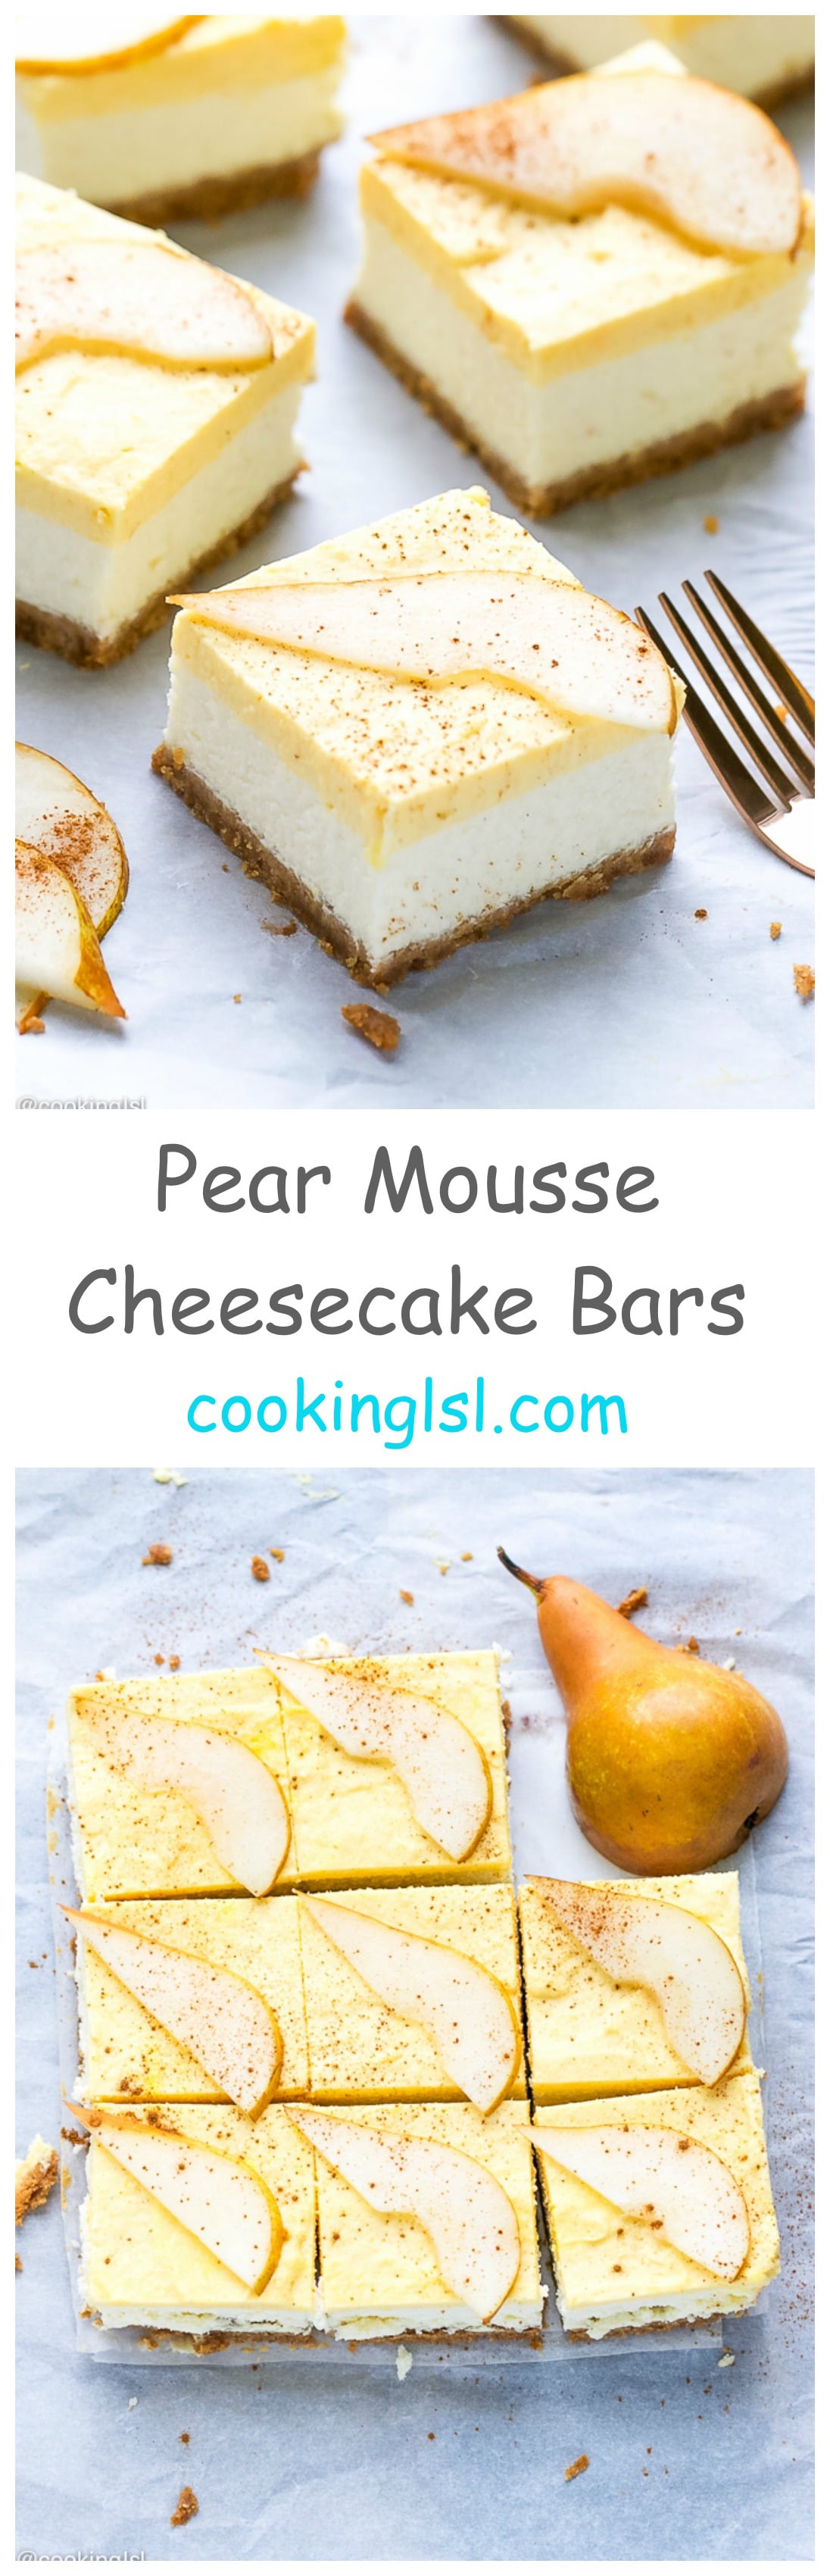 Pear-Mousse-Cheesecake-Bars-Recipe